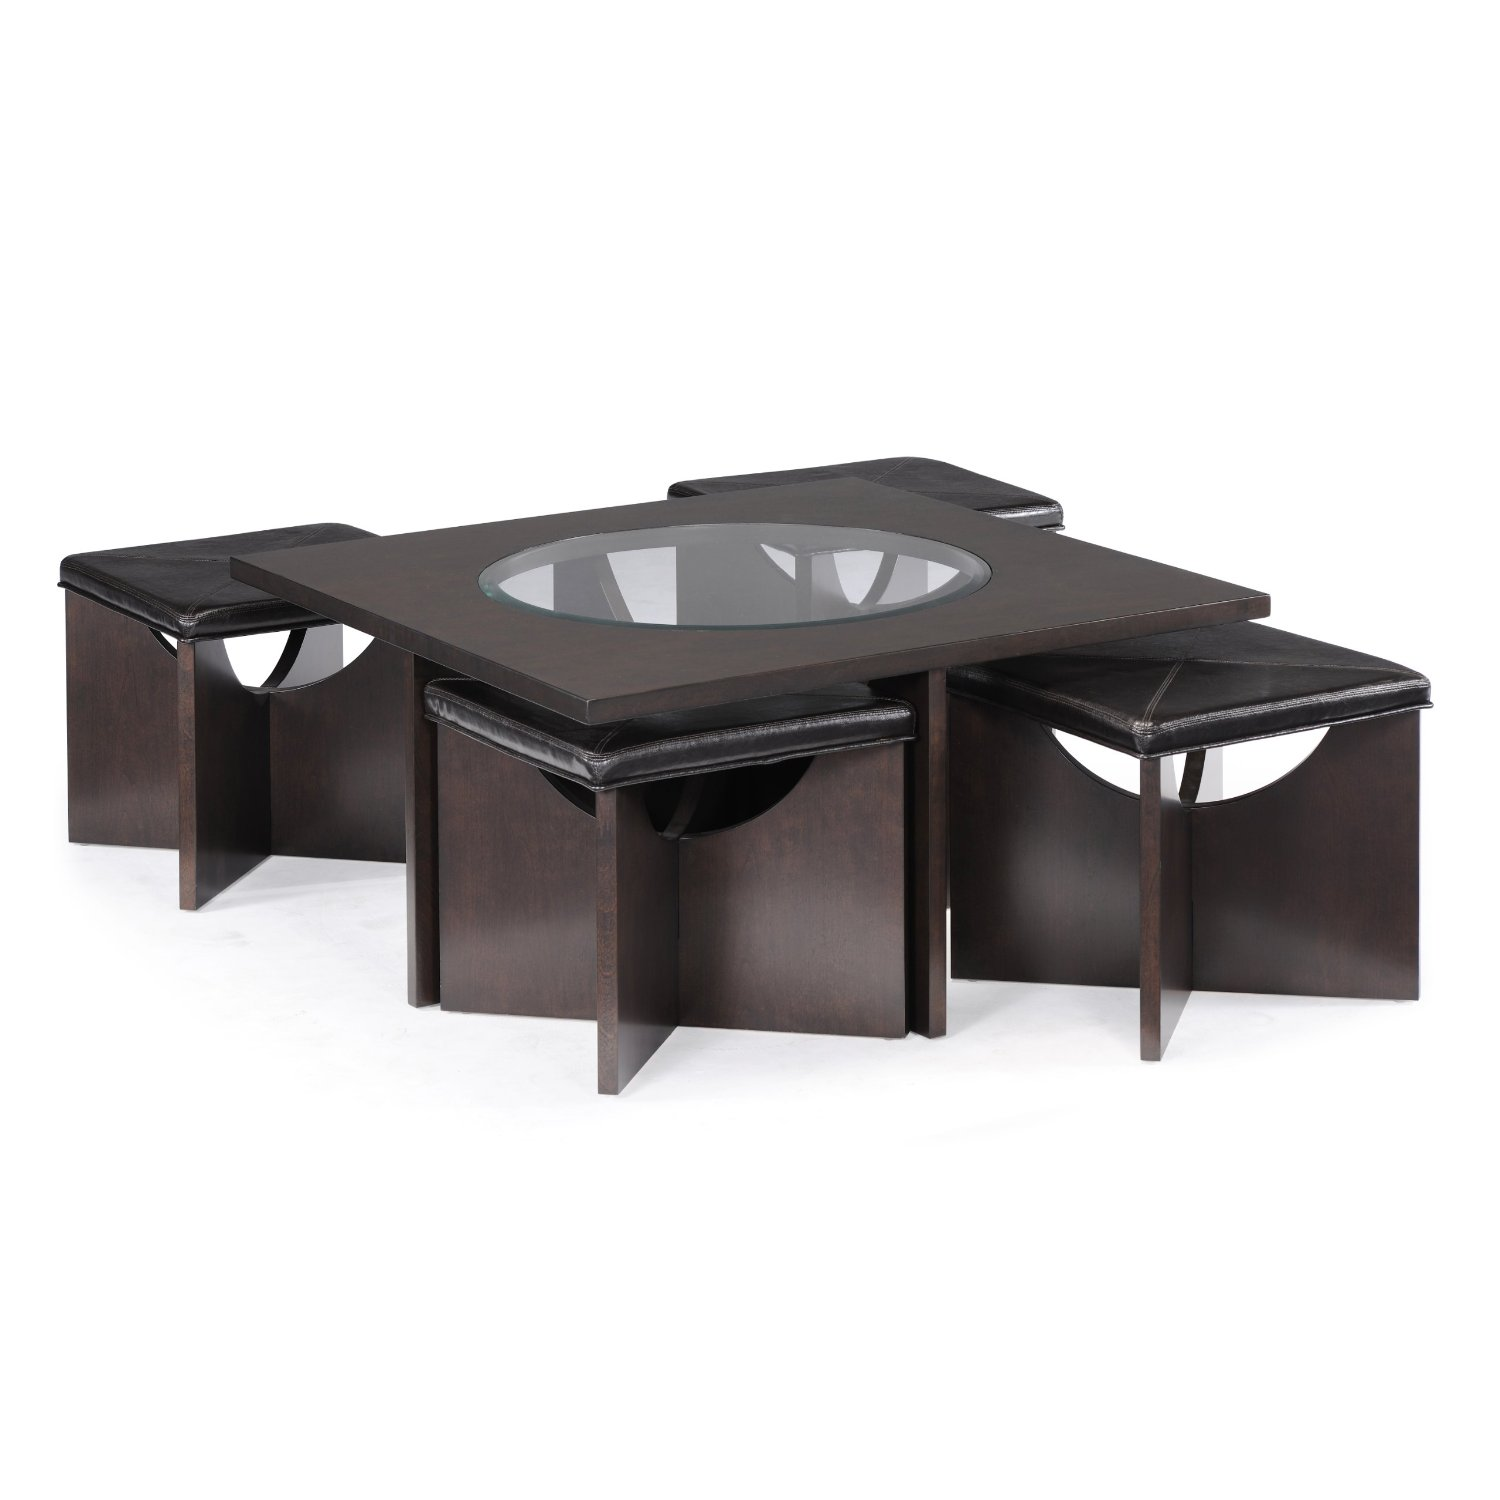 533 Magnussen Ozino Wood And Glass Square Cocktail Table With 4 S 866 594 6890